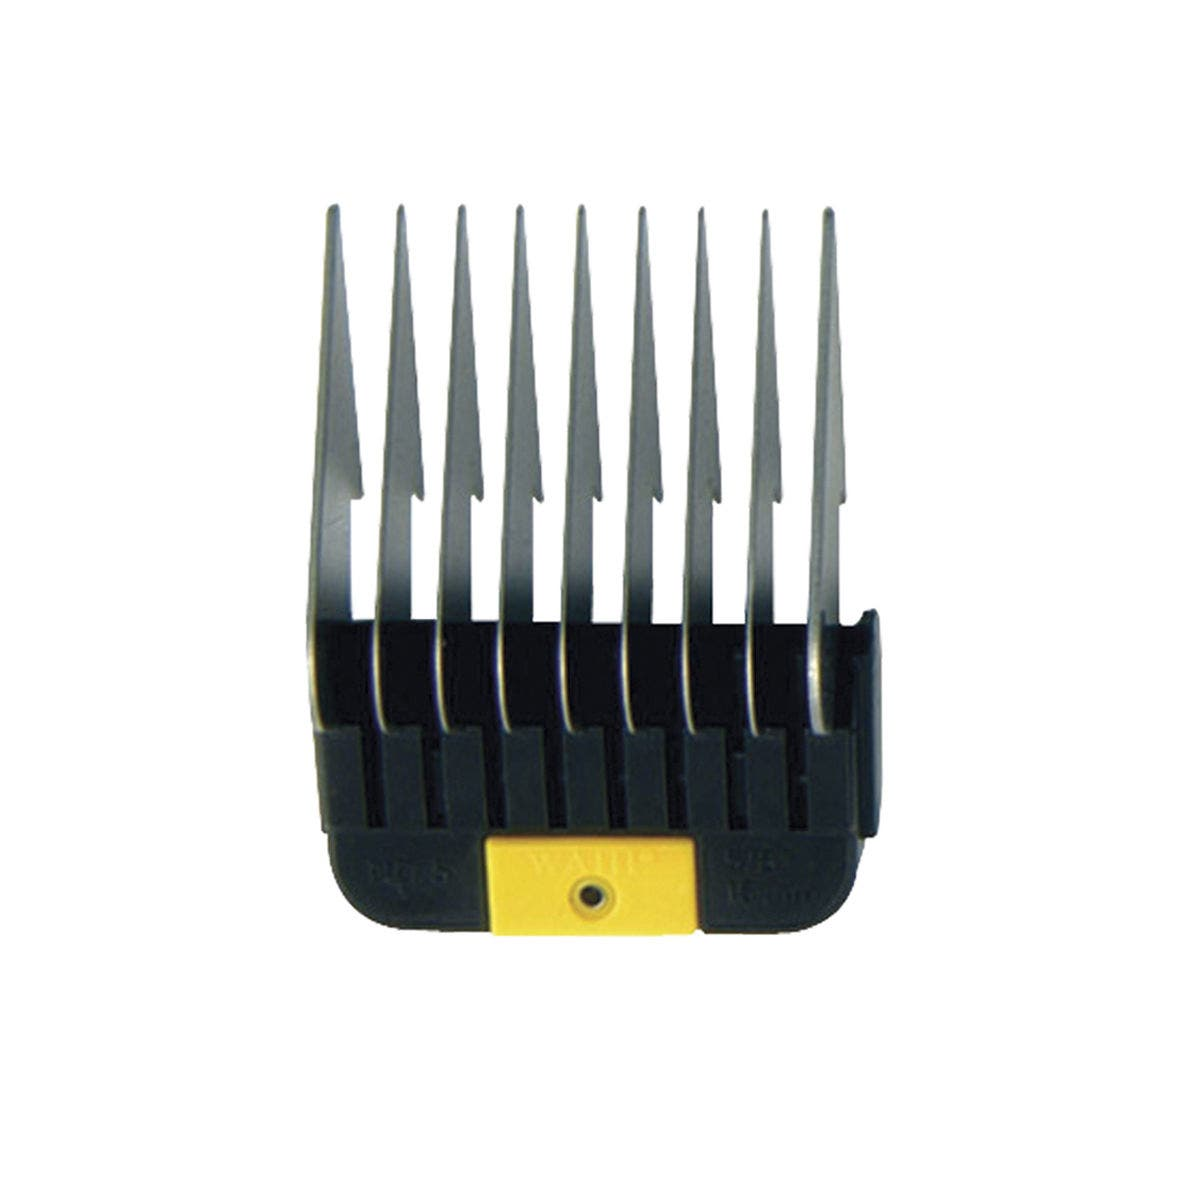 WAHL #5 Comb/Stainless Steel Attachment KMSS/KM2 ONLY ONE GUIDE!